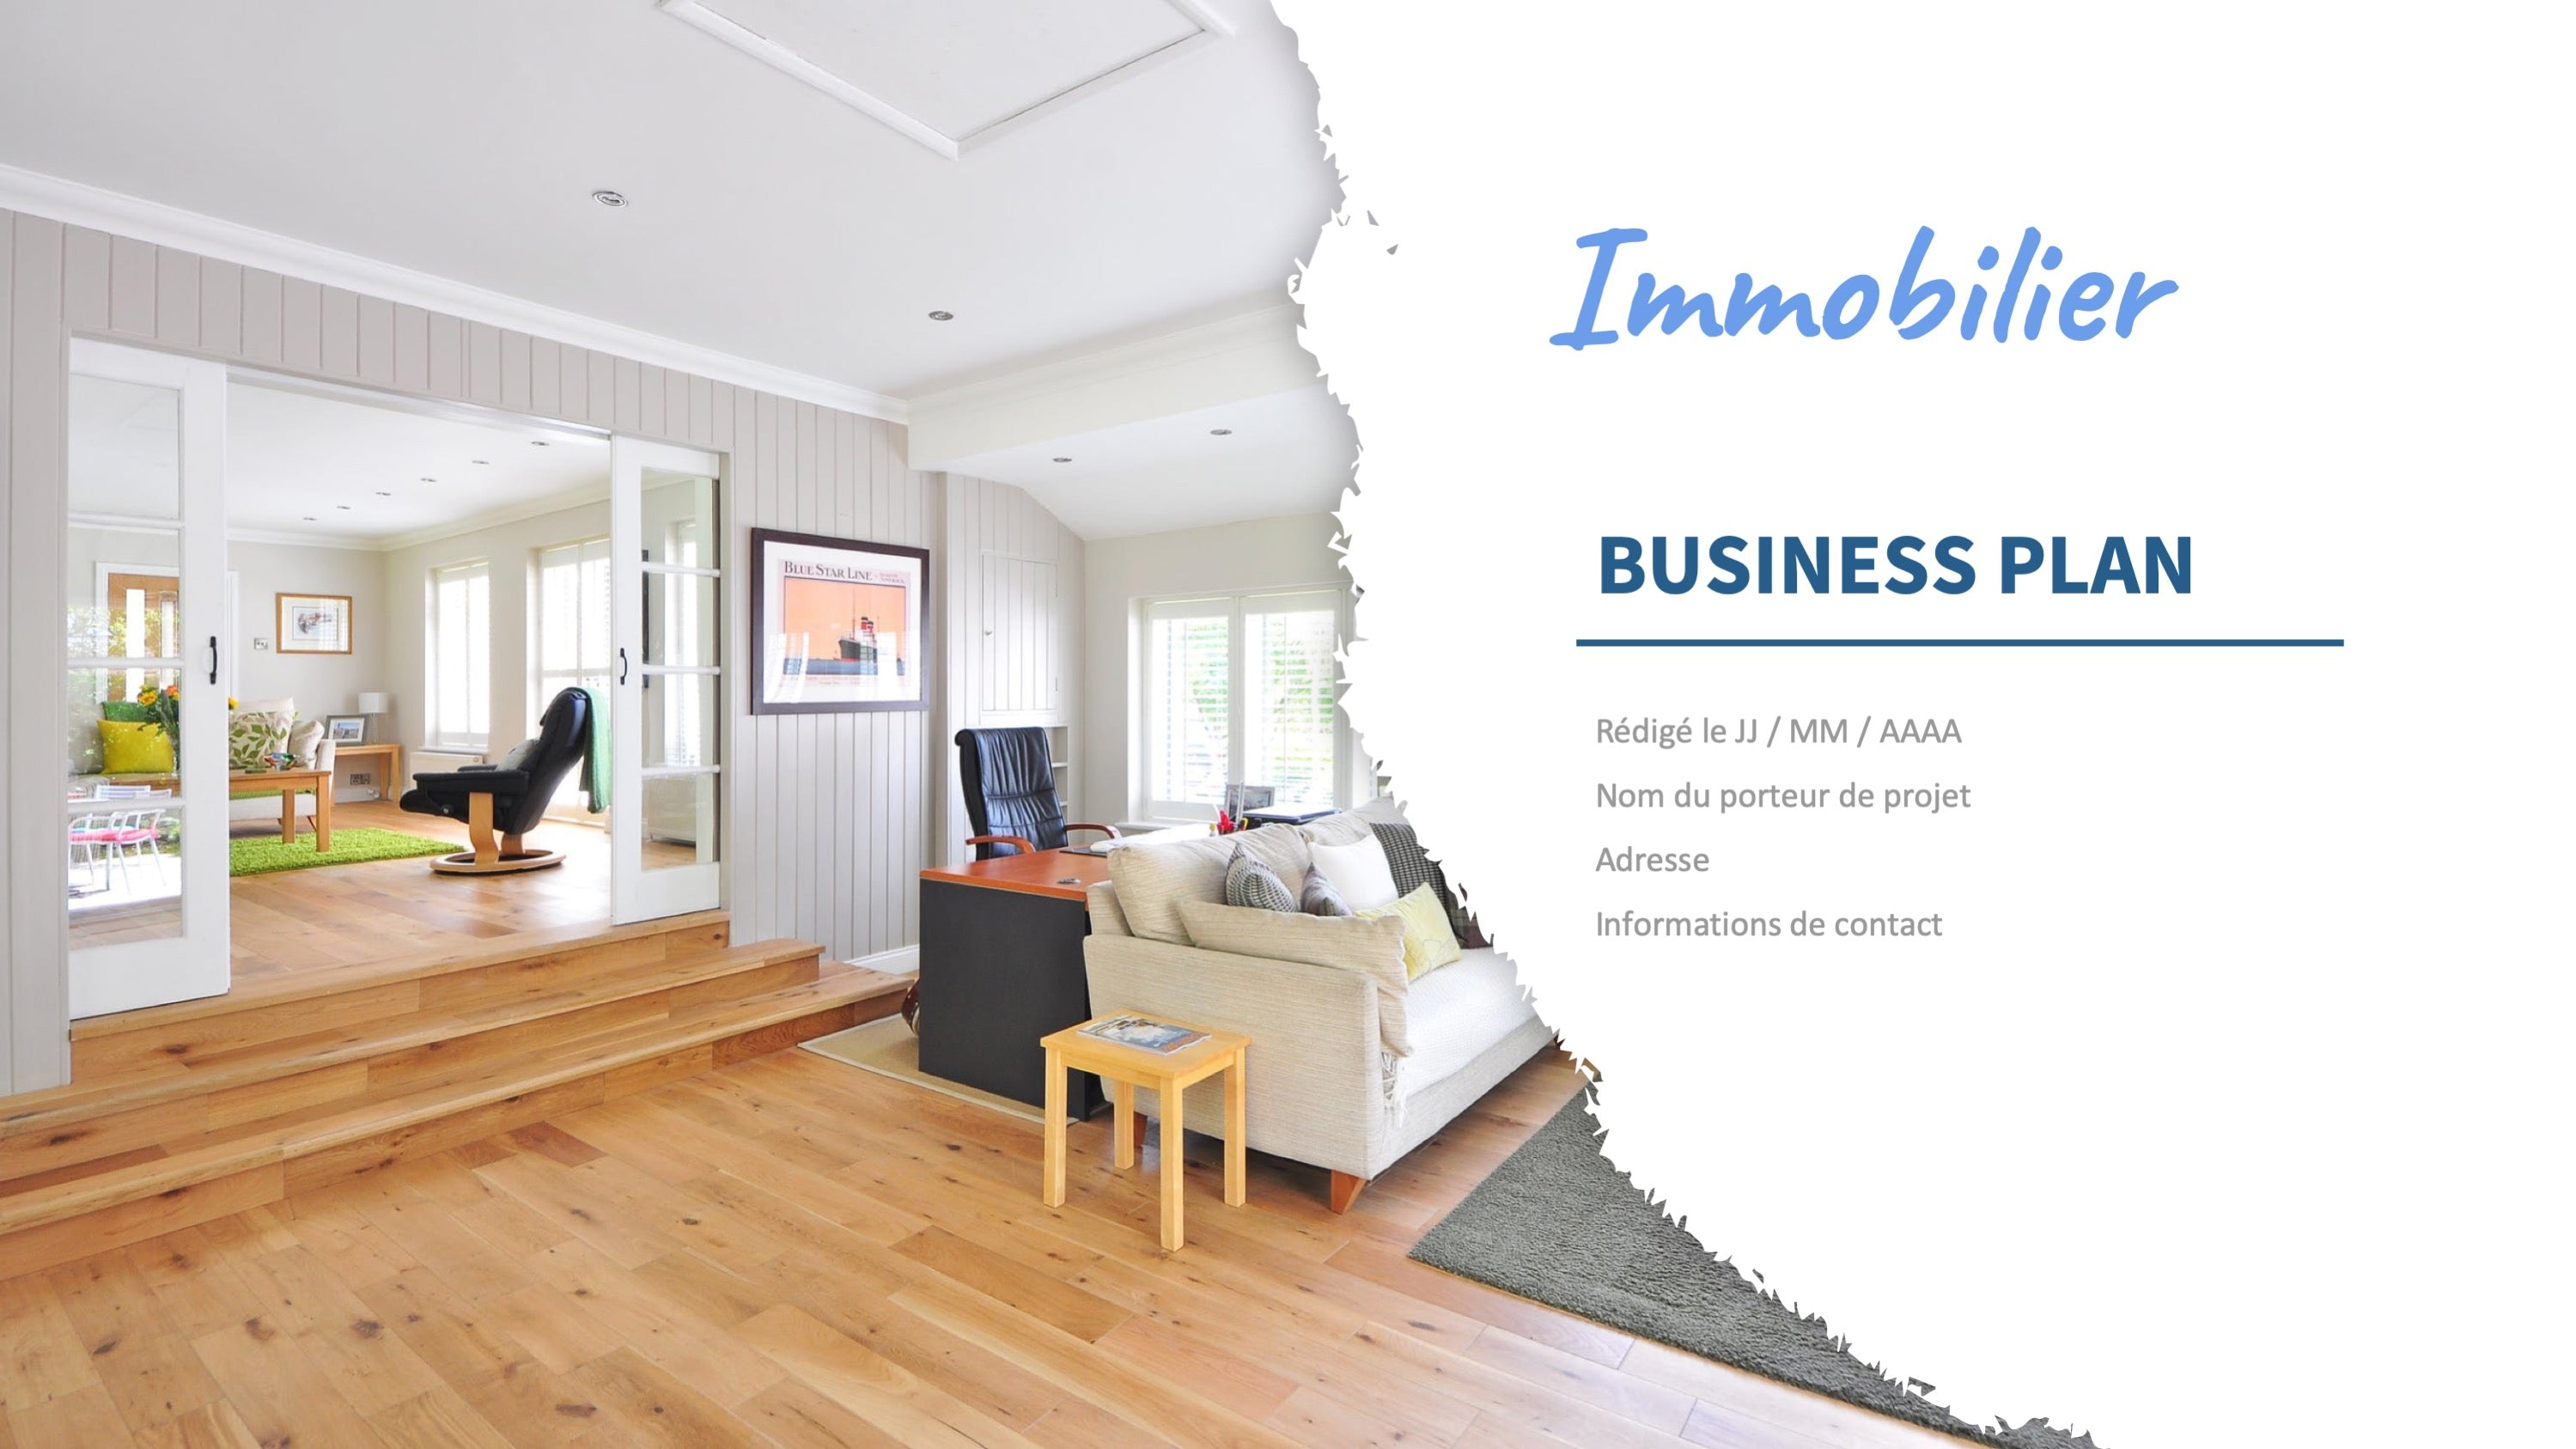 business plan immobilier